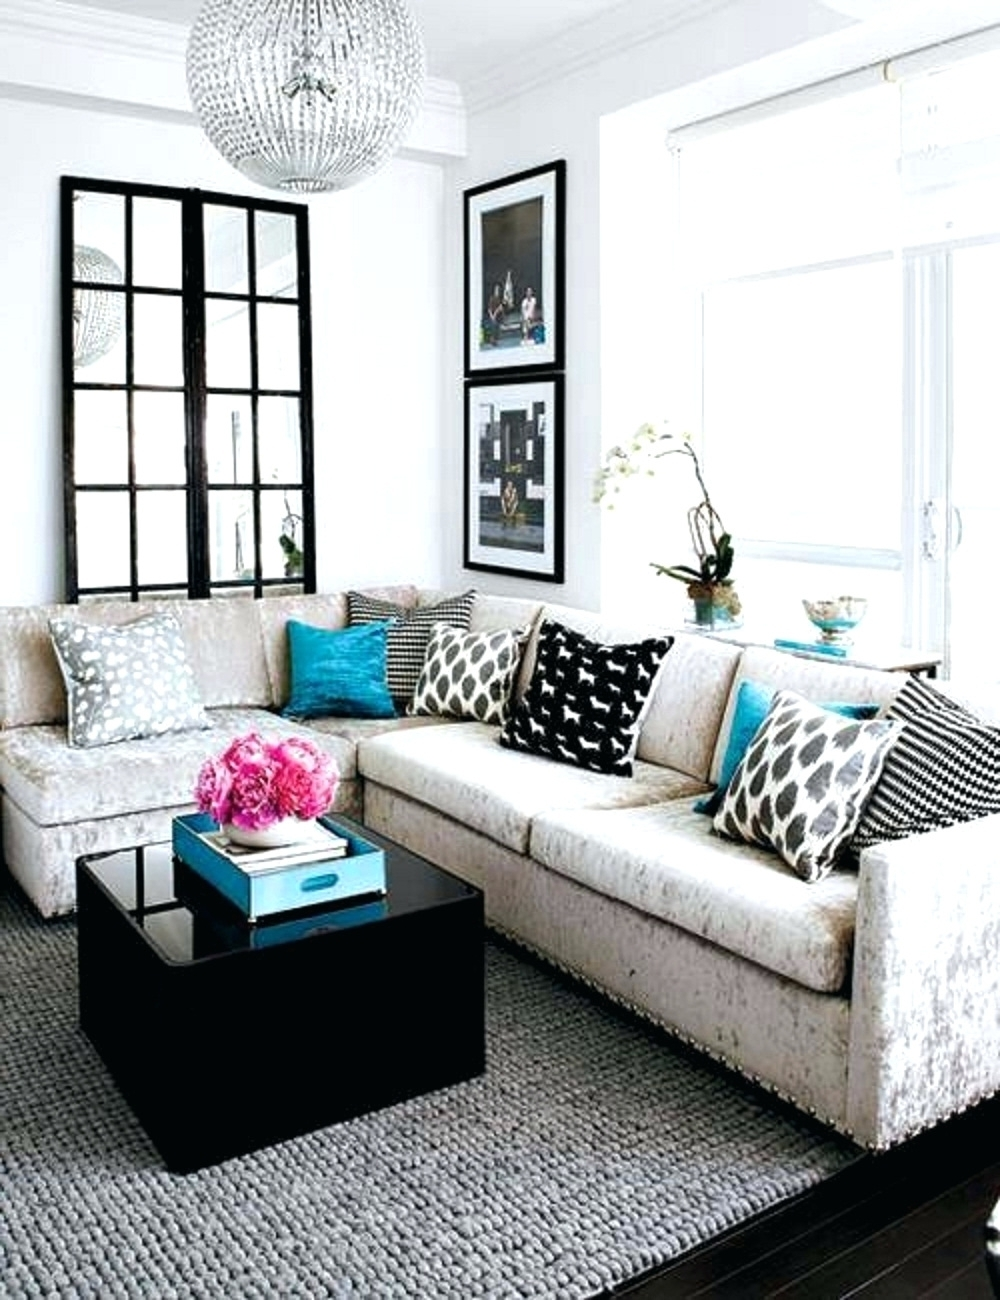 Sectional Sofas Decorating Within Current Decorations : Small Sectional Sofa Decorating Ideas Black (View 15 of 20)